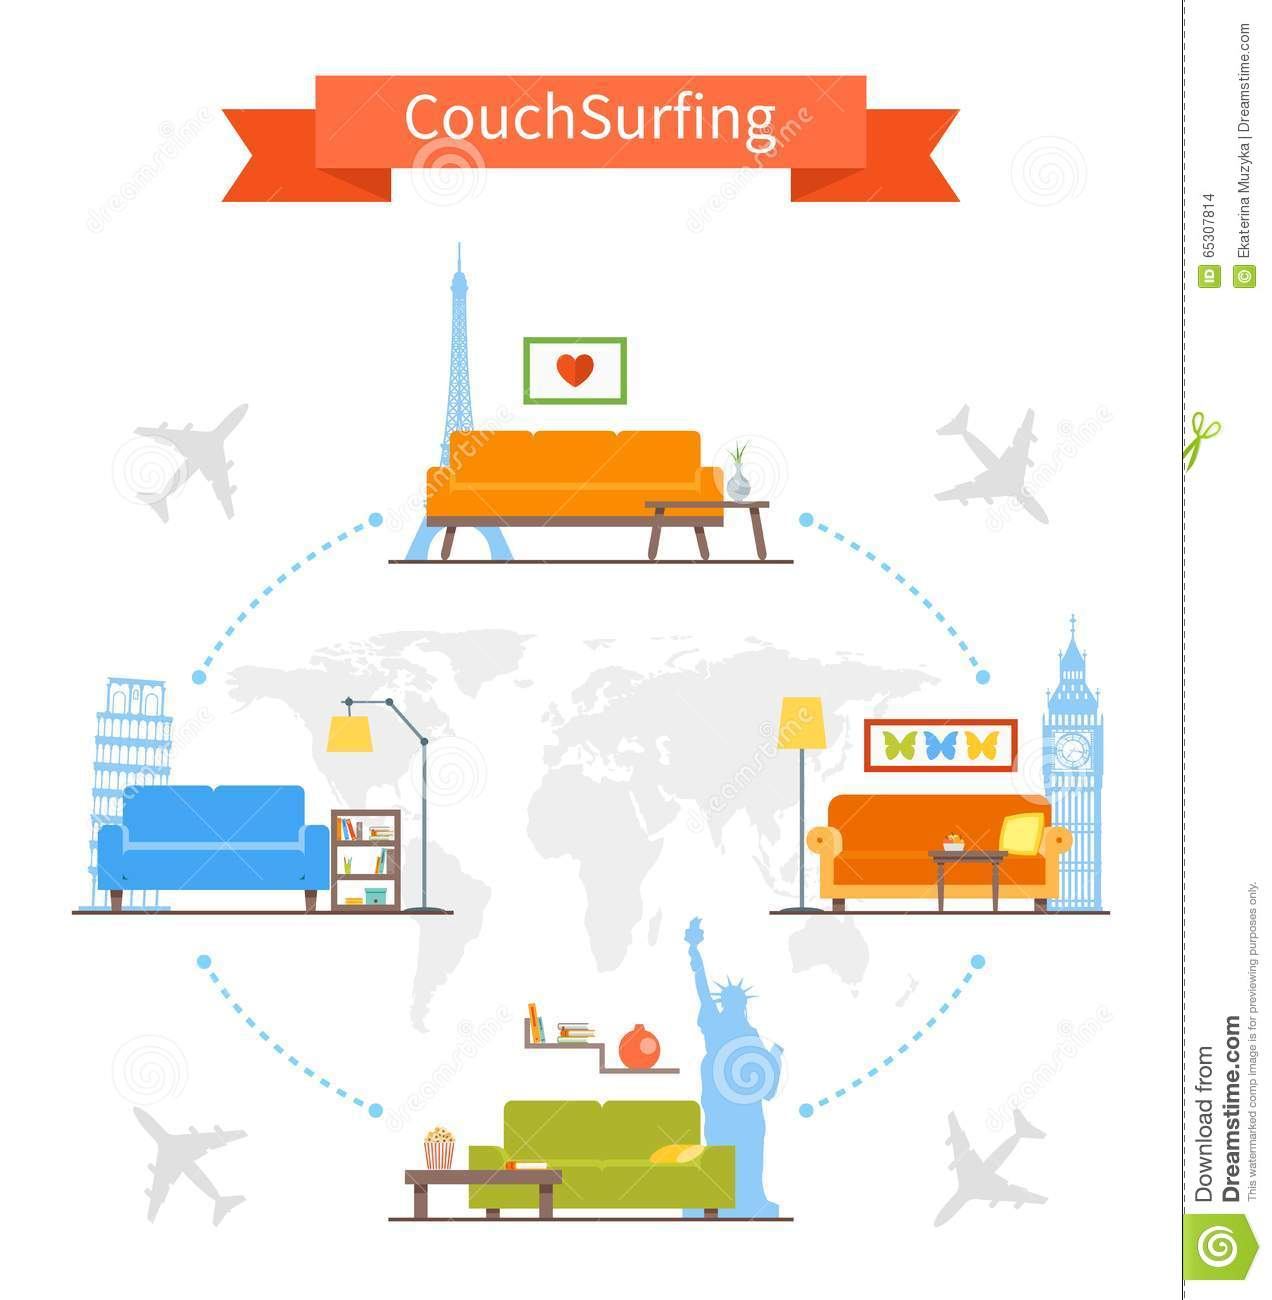 Couchsurfing cartoons illustrations vector stock images for Couch surfing